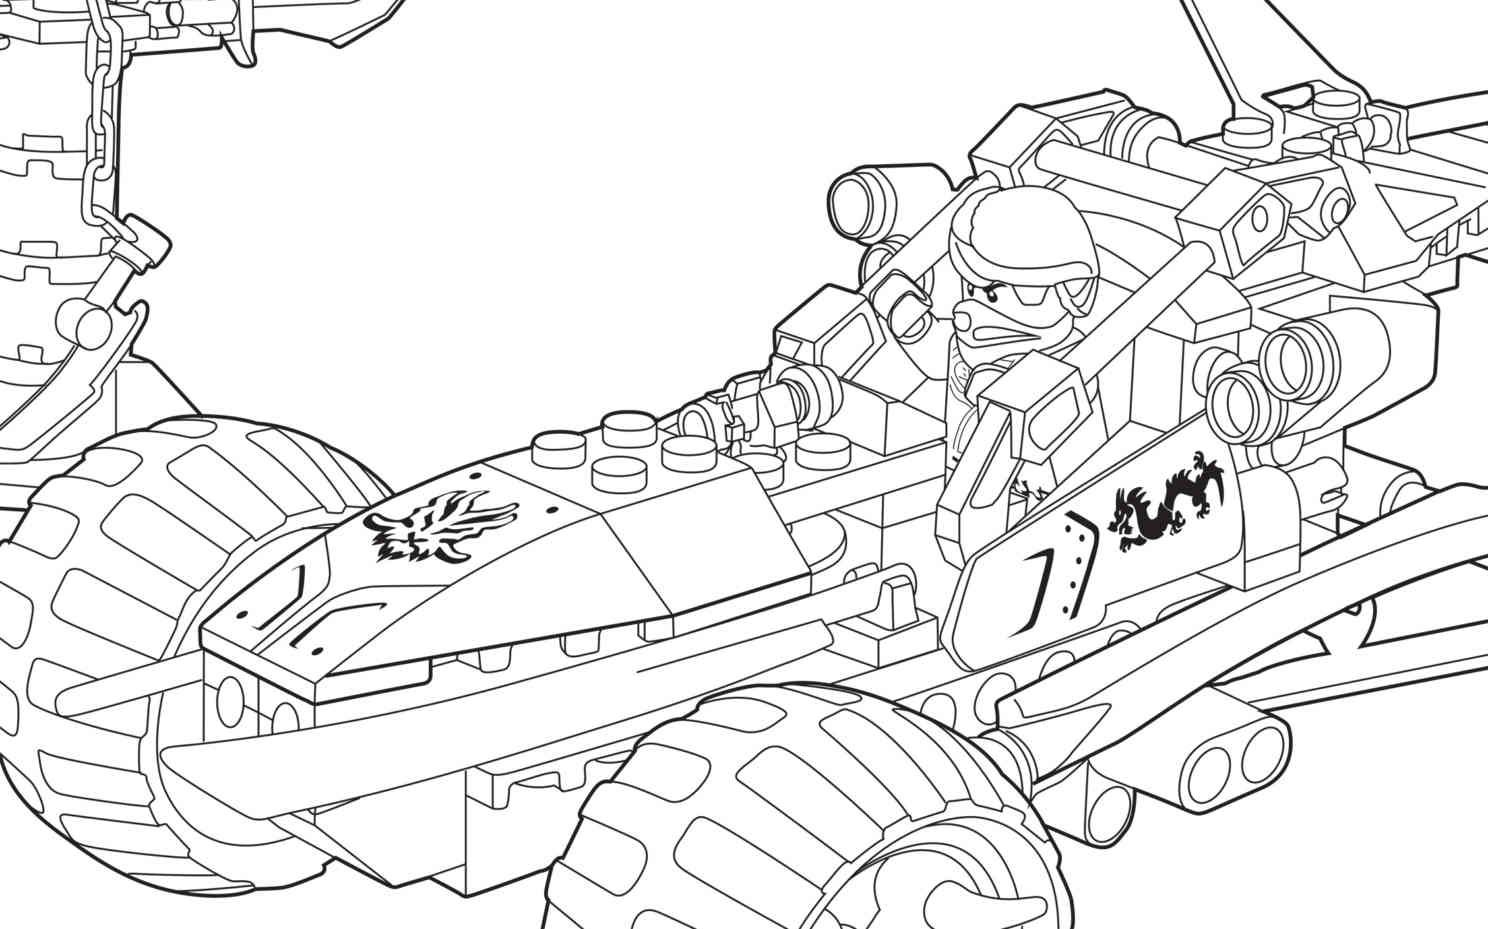 LEGO Ninjago 70755 coloring sheet. | LEGO® Coloring Sheets ...